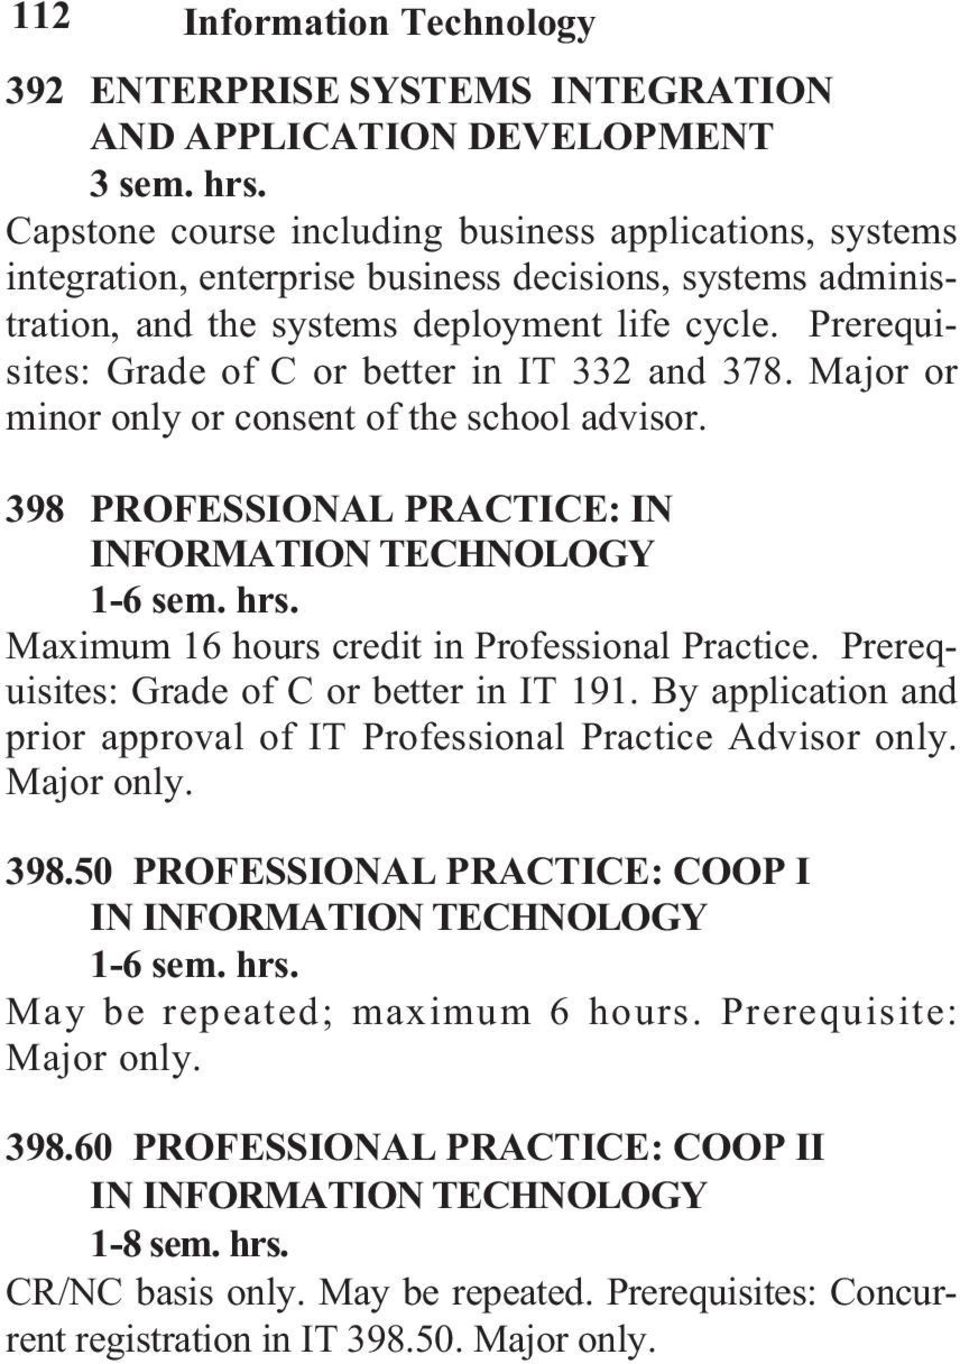 Maximum 16 hours credit in Professional Practice. Prerequisites: Grade of C or better in IT 191. By application and prior approval of IT Professional Practice Advisor only. Major only. 398.